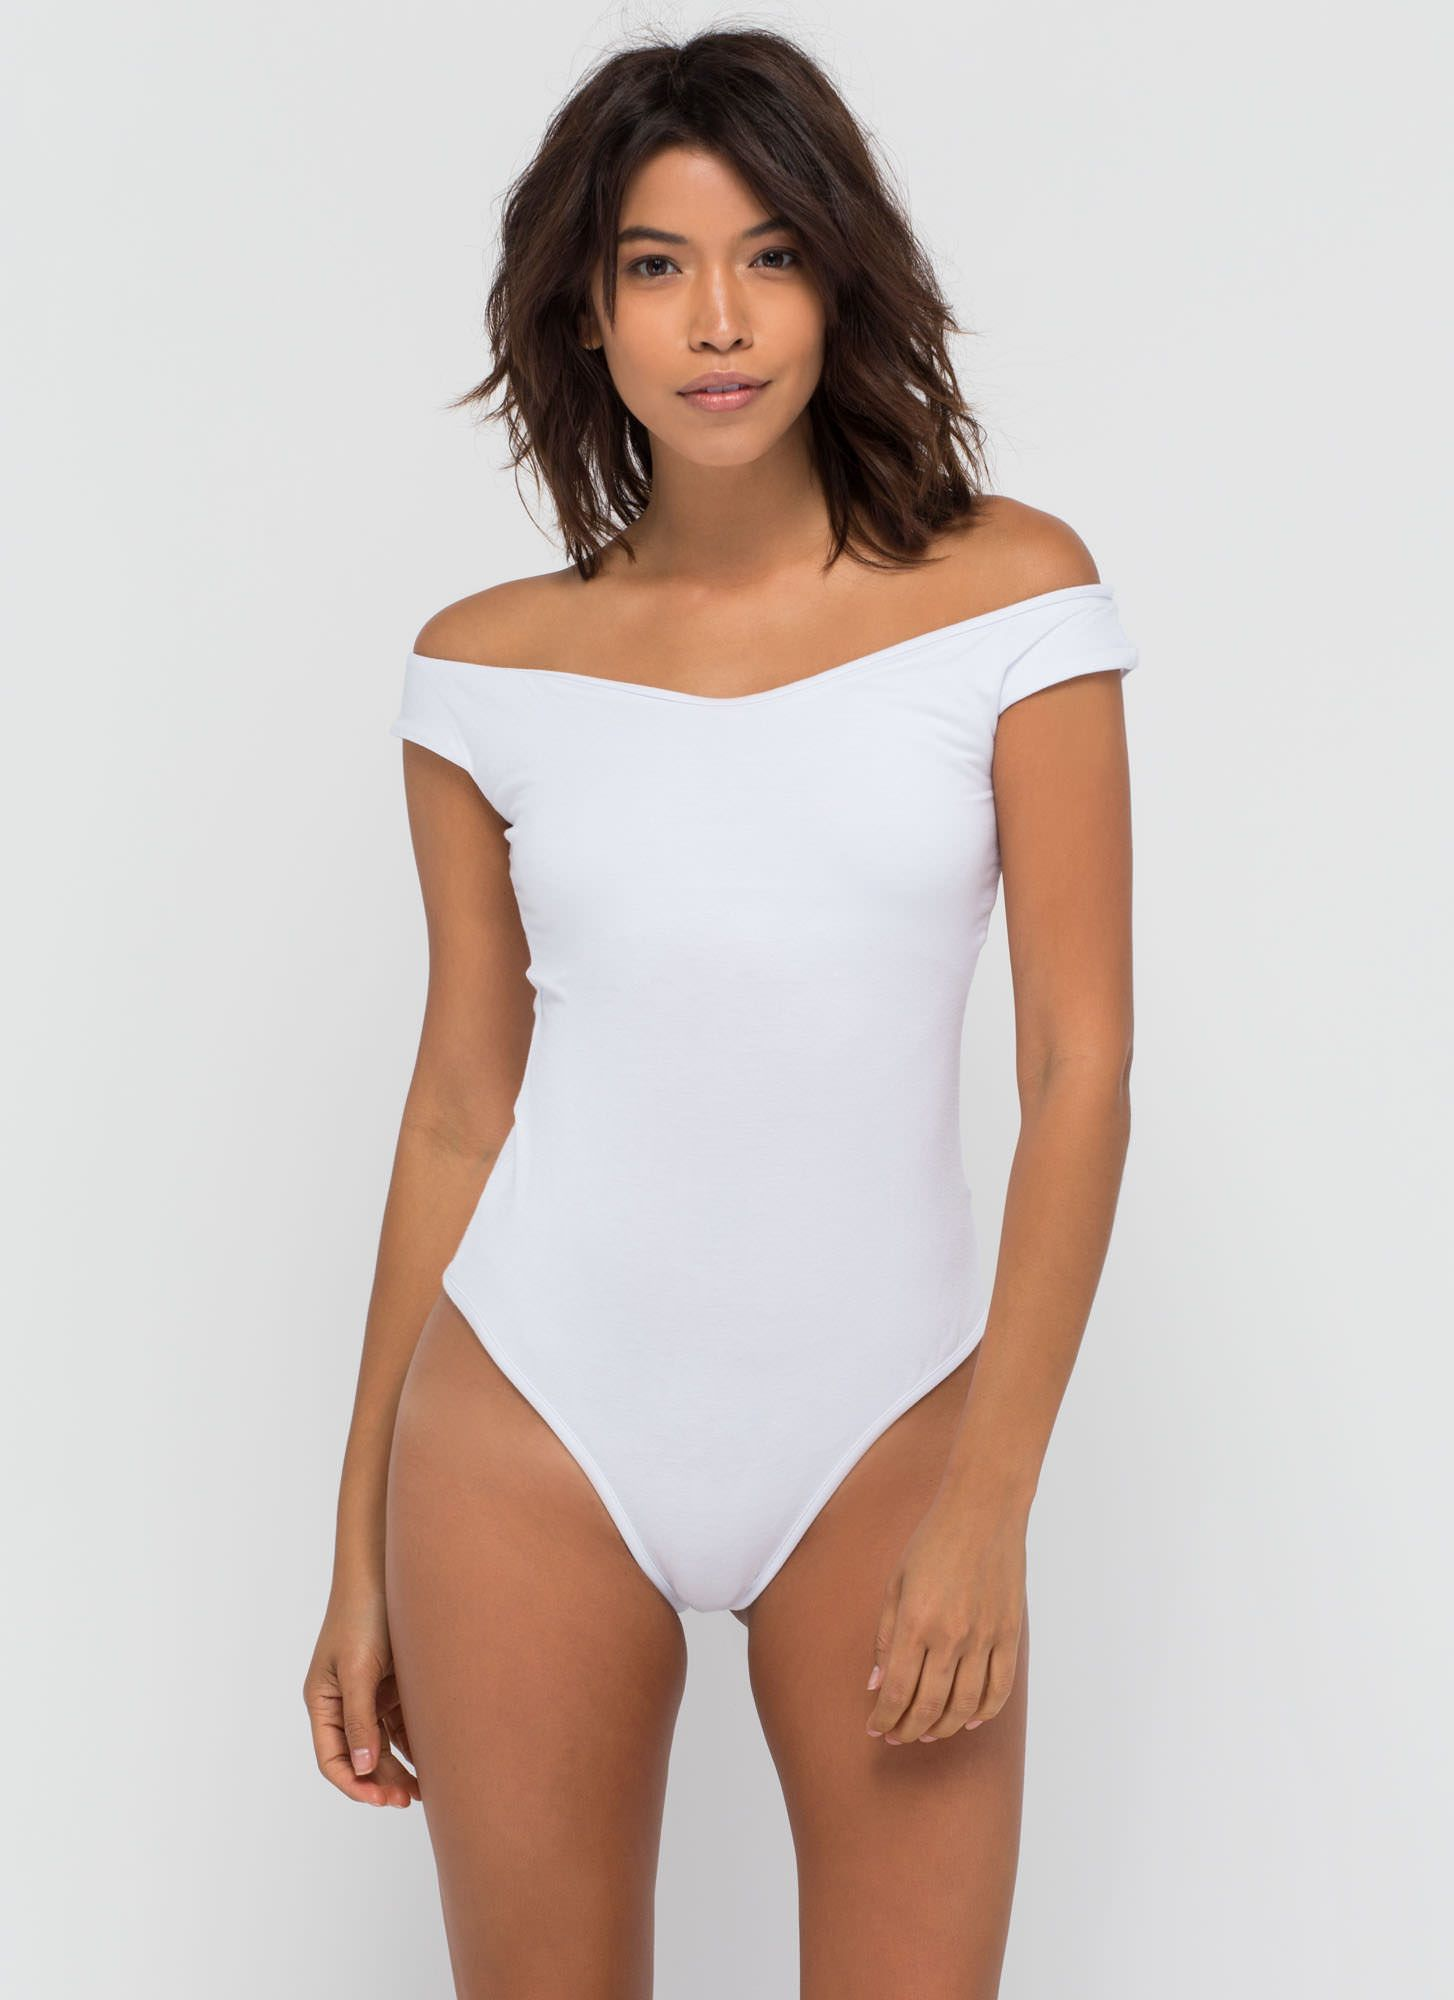 Bodysuits for Women 68 results 1 / 1 Shop white or black bodysuits with plunging v-necks and halter bodysuits or full-coverage blouse and sweater bodysuits. Want to complete the look? Grab a new pair of women's jeans.